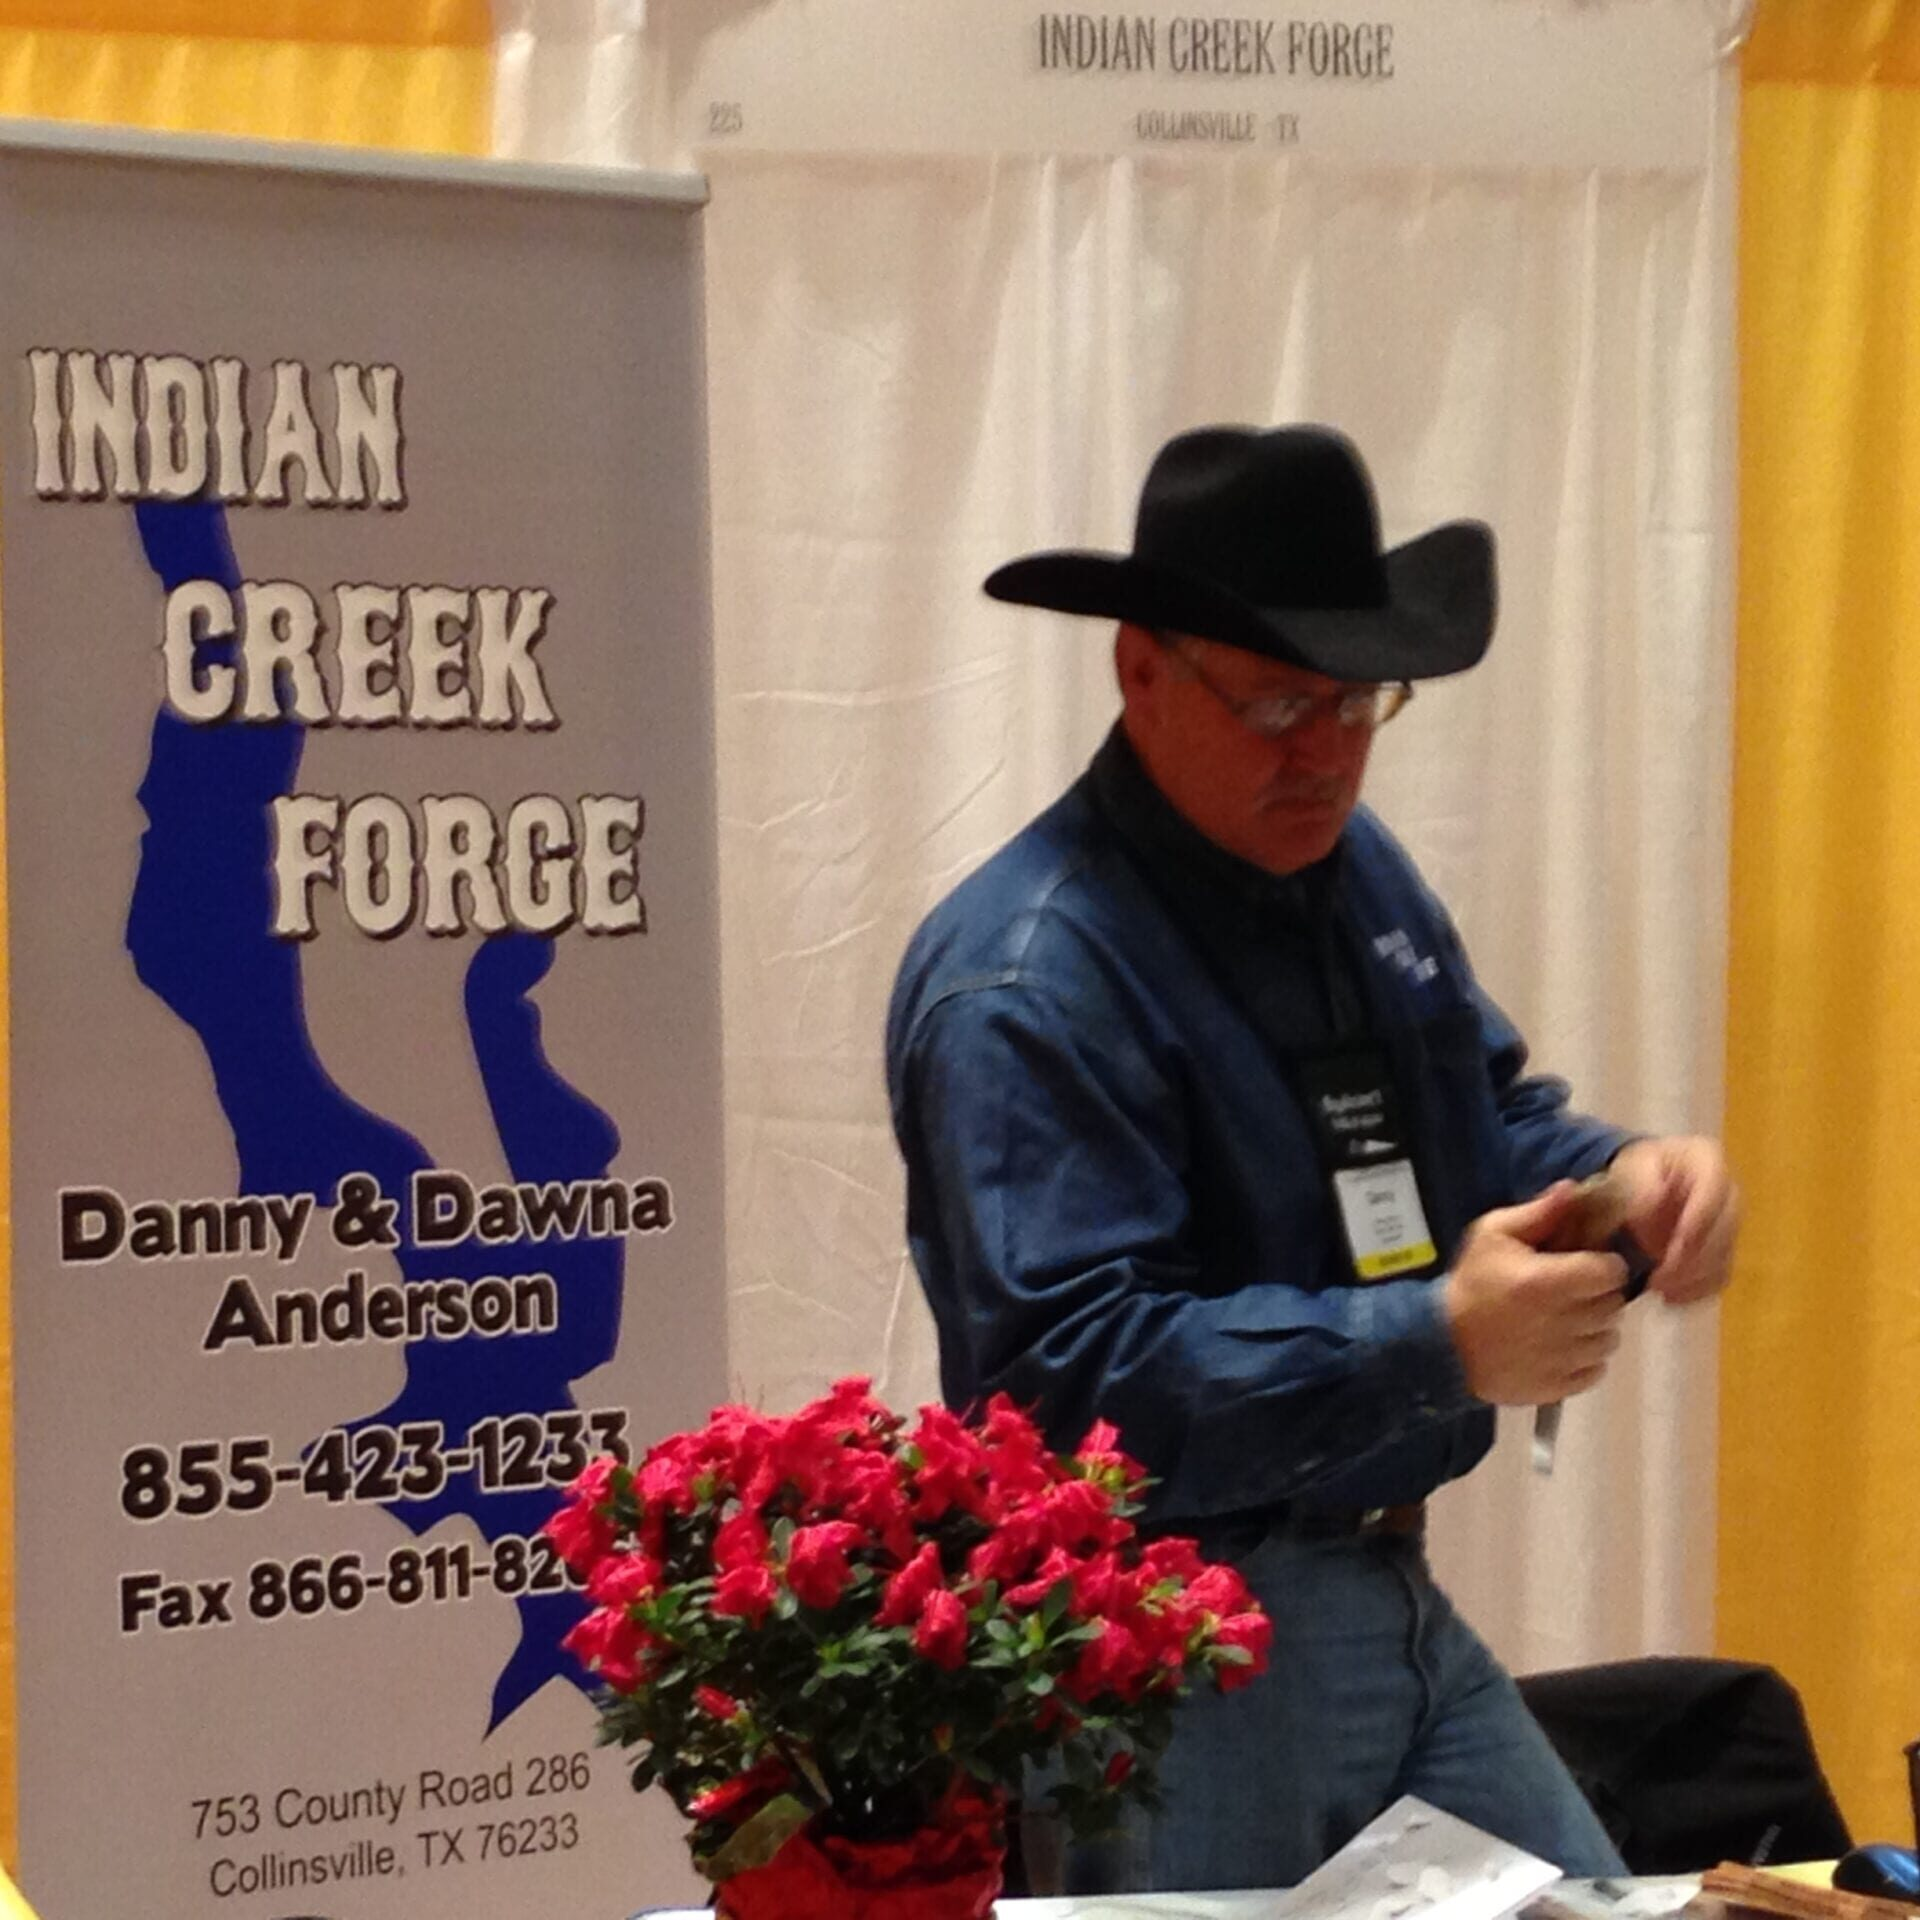 INDIAN CREEK FORGE, LLC